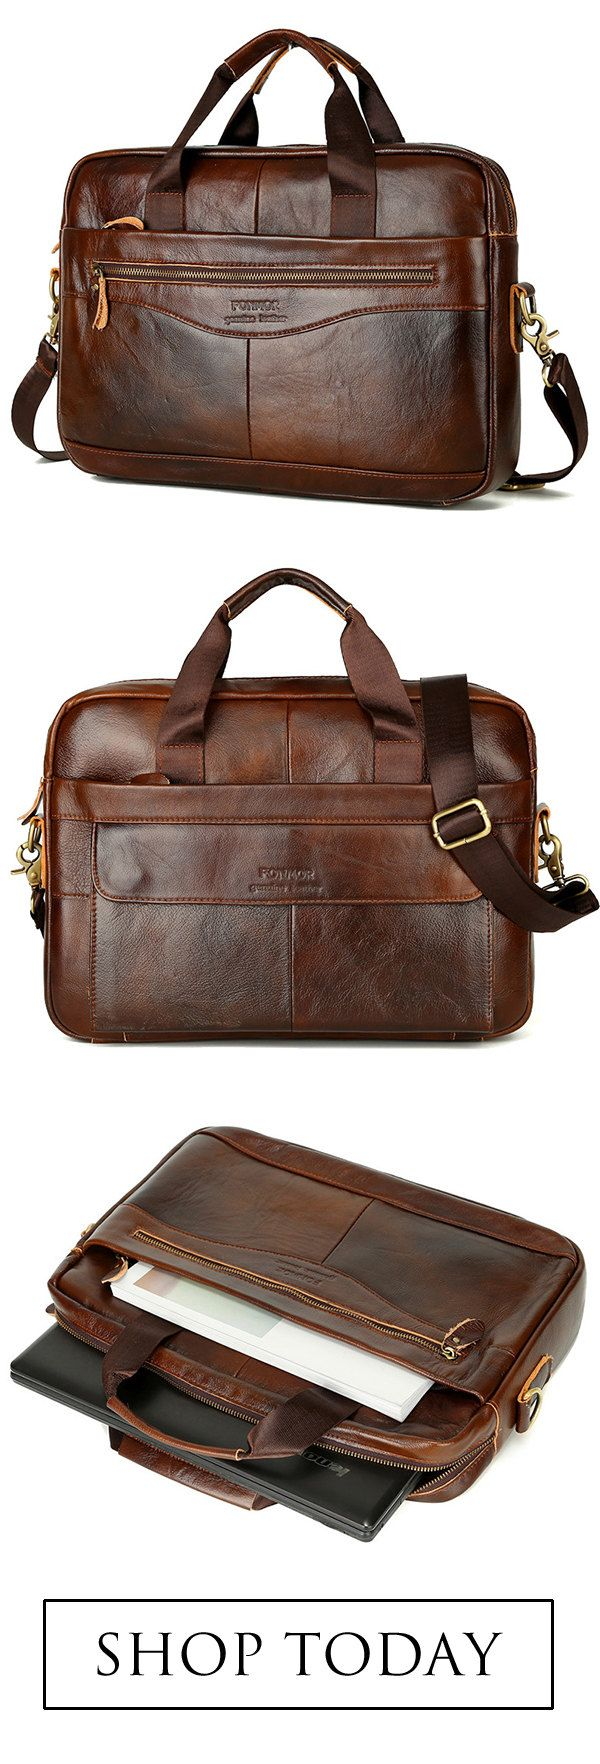 Briefcase in Leather for Men. Excellent Quality.